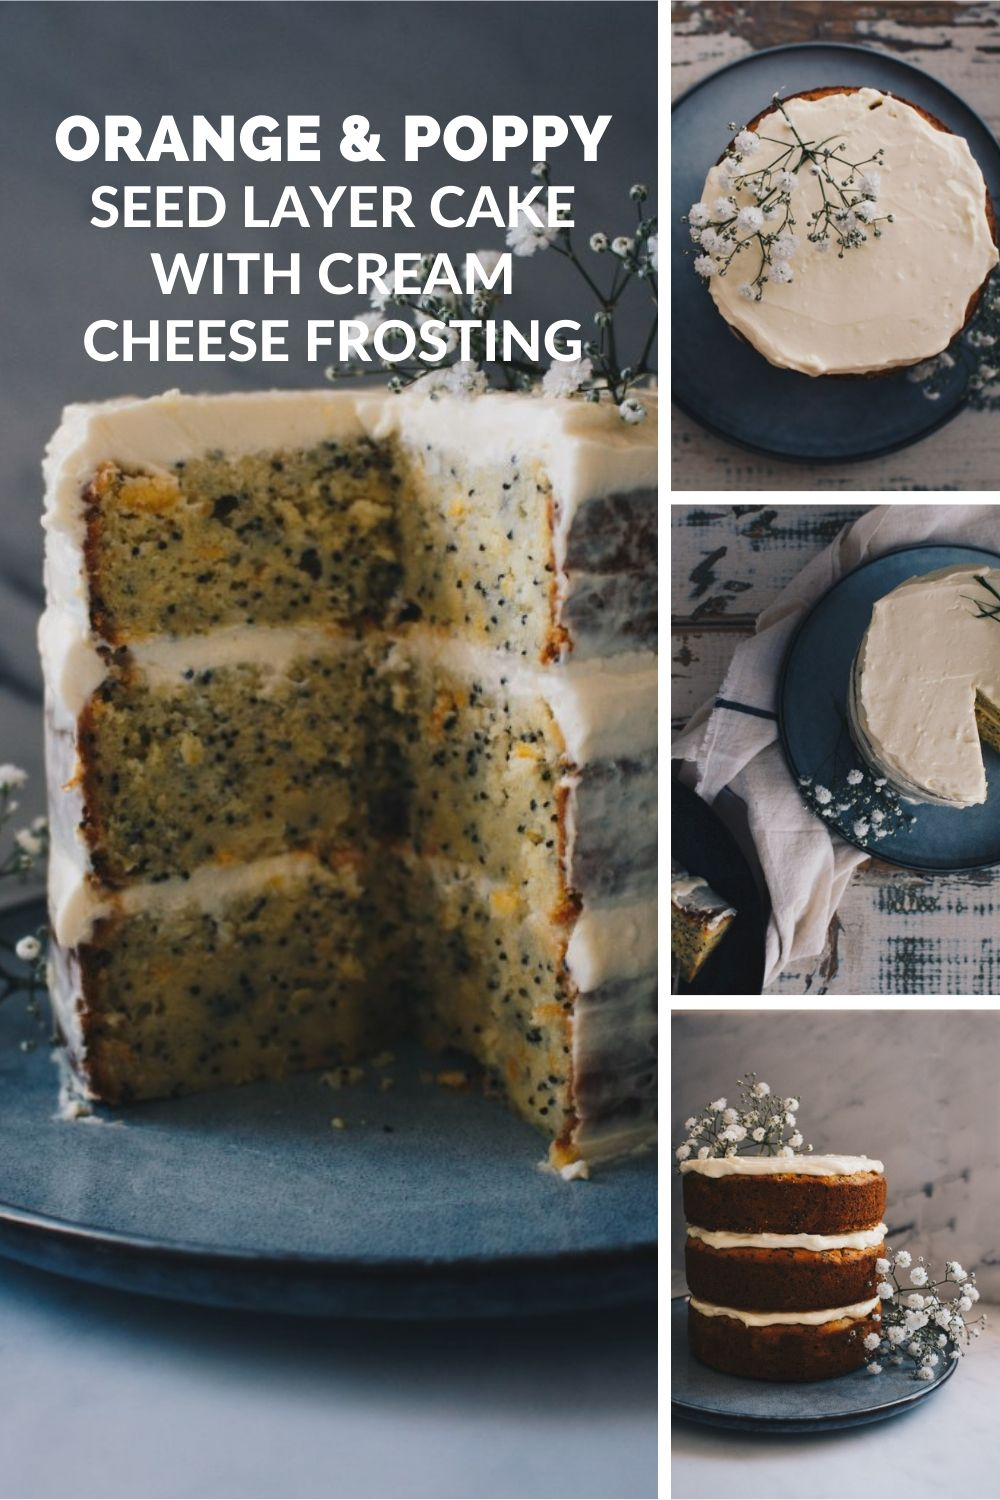 ORANGE & POPPY SEED LAYER CAKE WITH CREAM CHEESE FROSTING